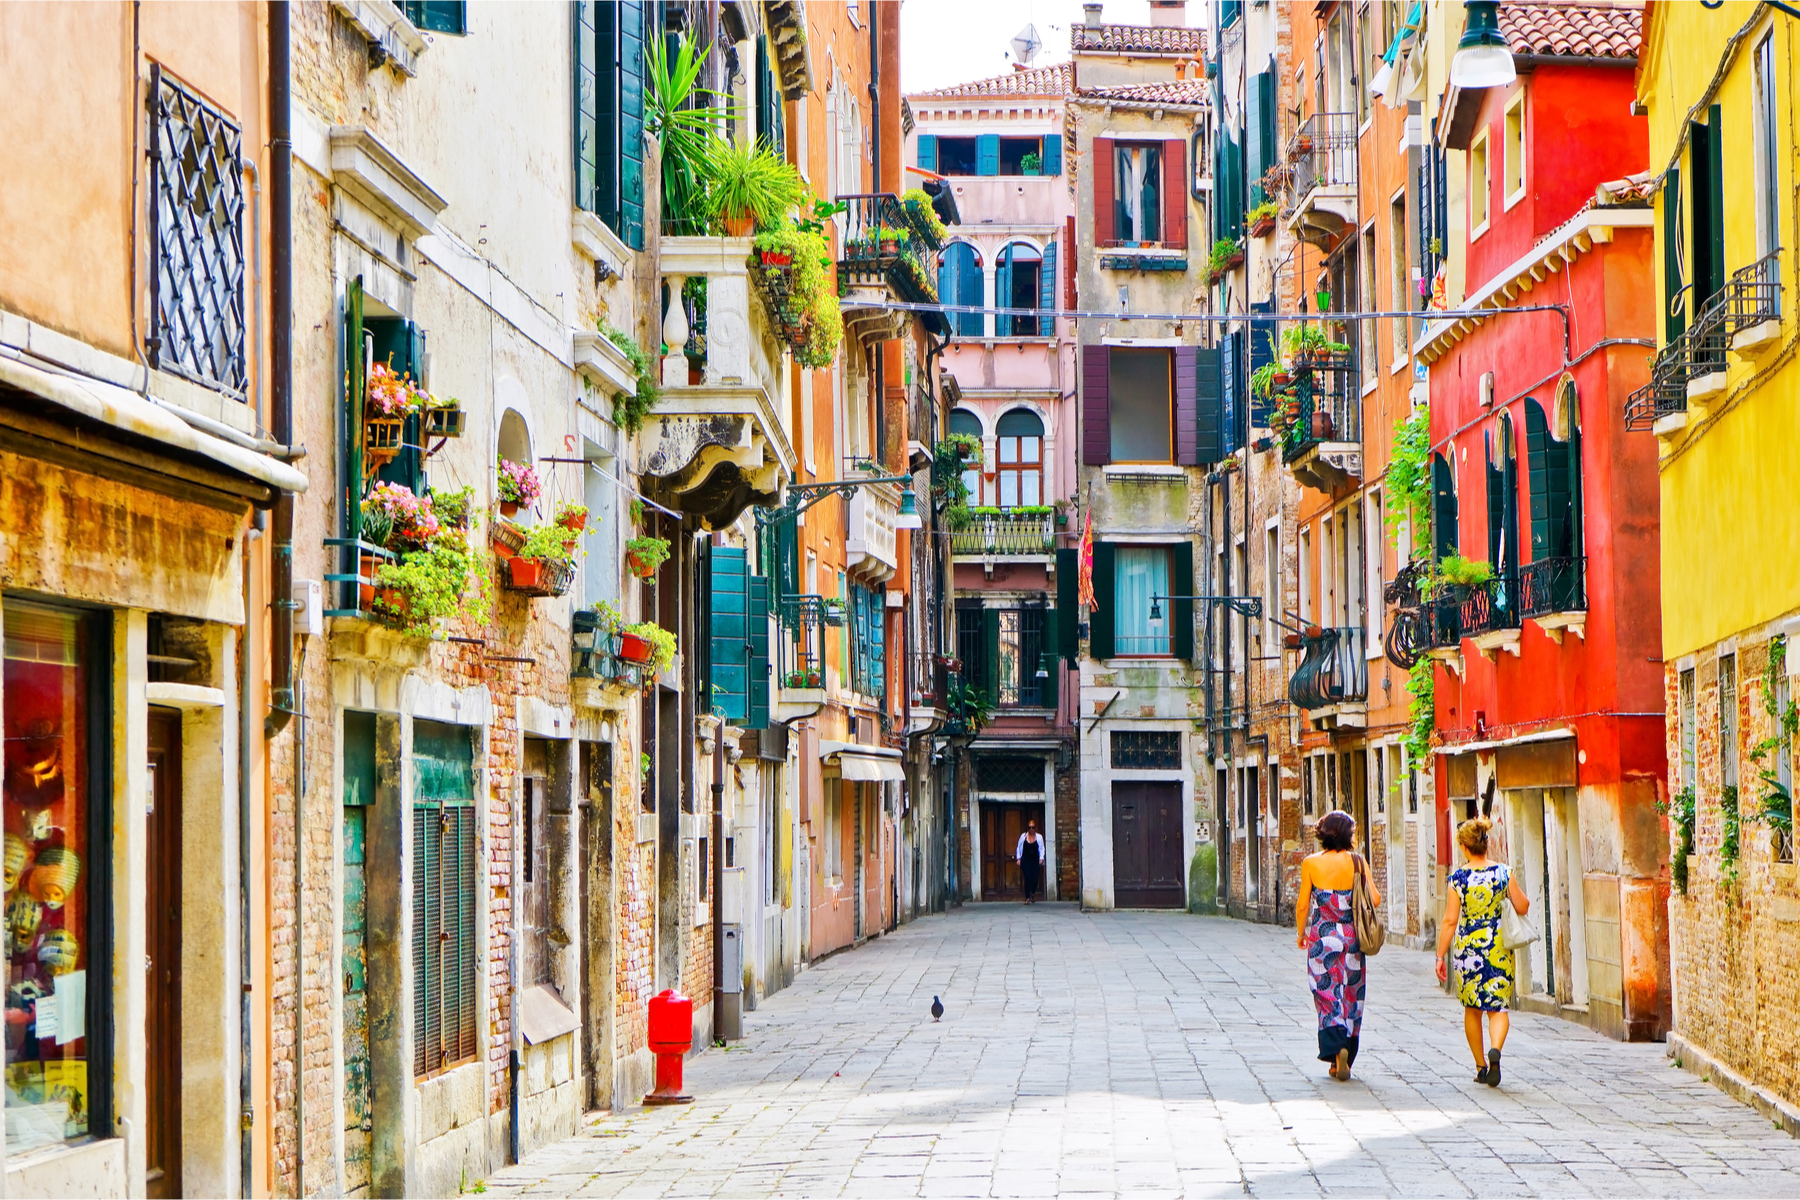 10 Ways to Make the Best of Your Venice Trip